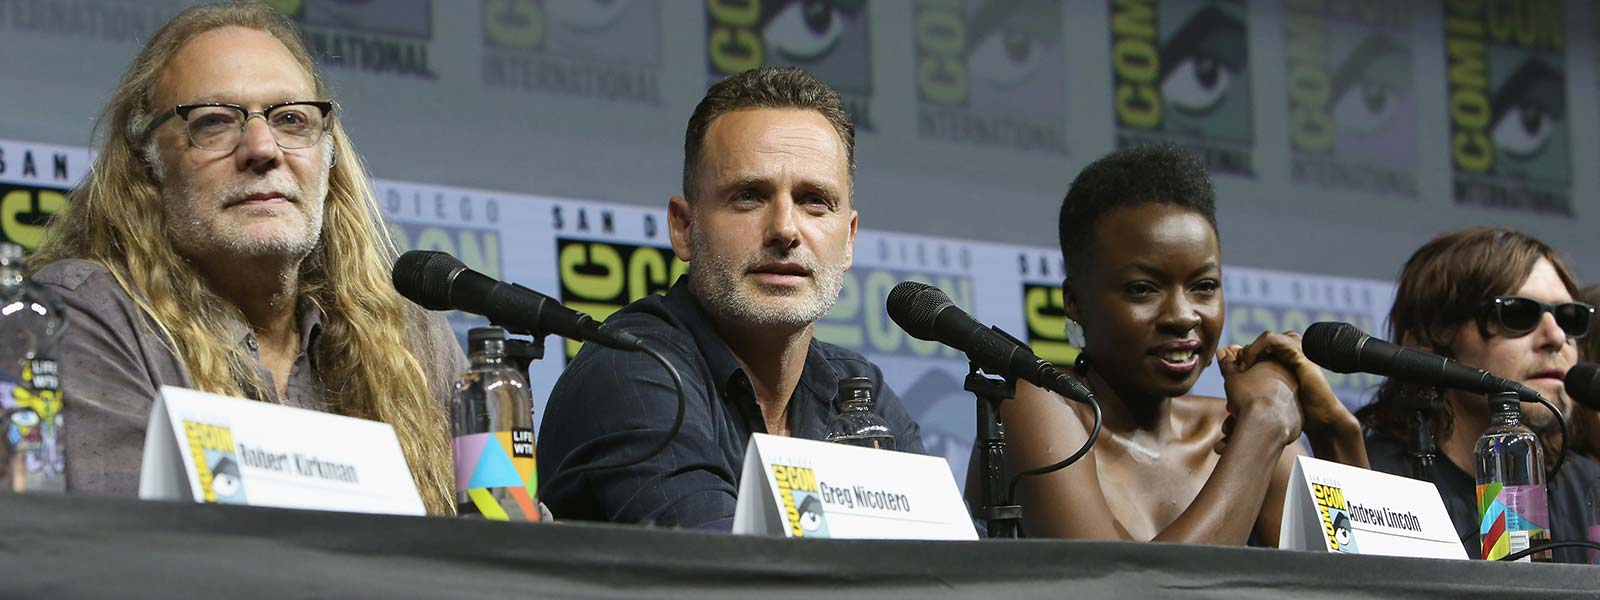 the-walking-dead-season-9-comic-con-panel-andrew-lincoln-greg-nicotero-800×600